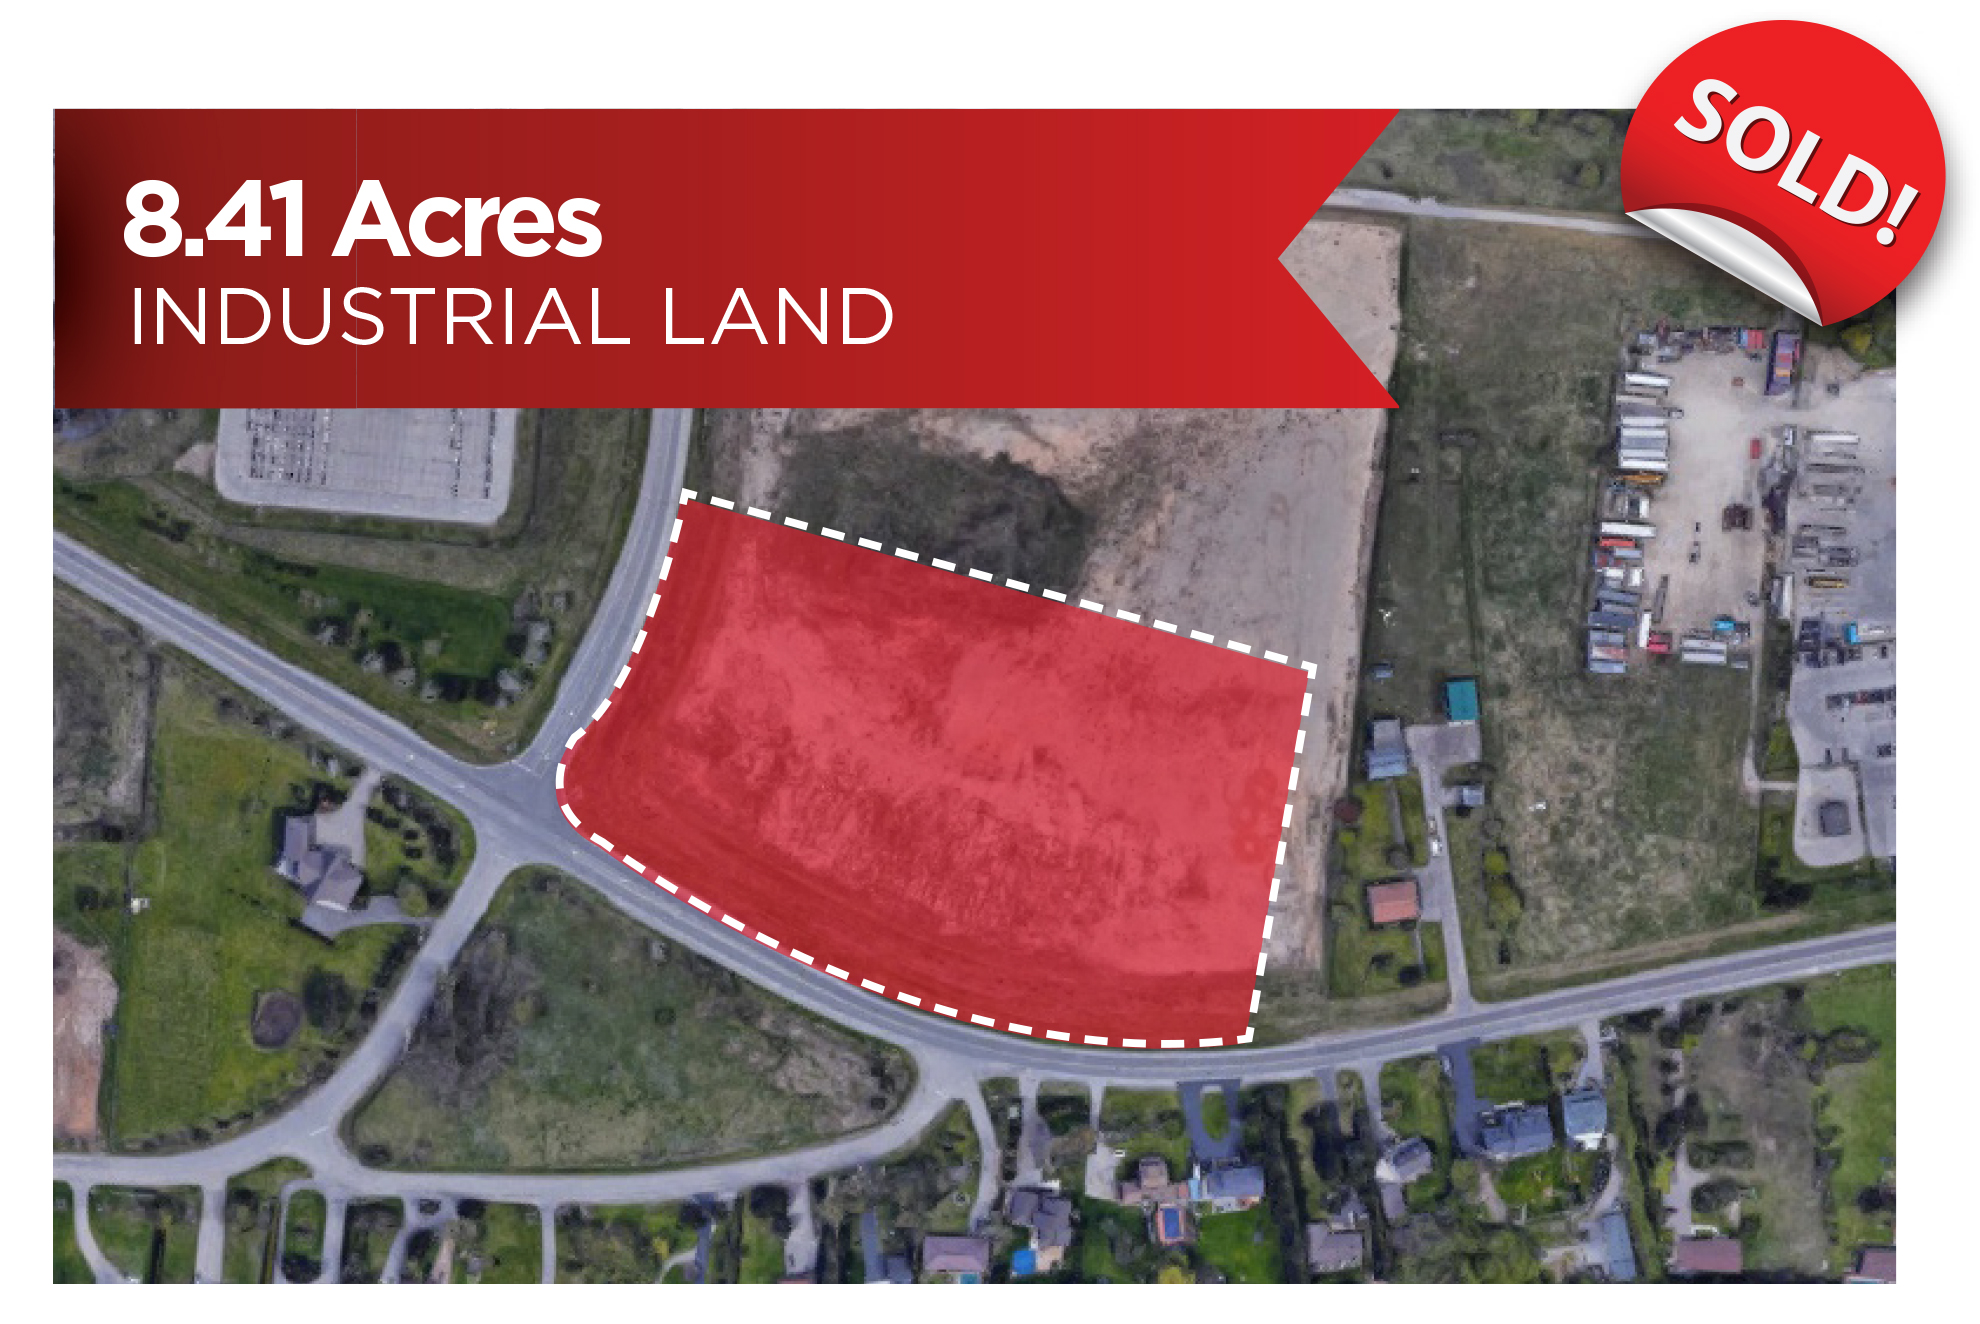 Industrial Land Sale | Cambridge, ON